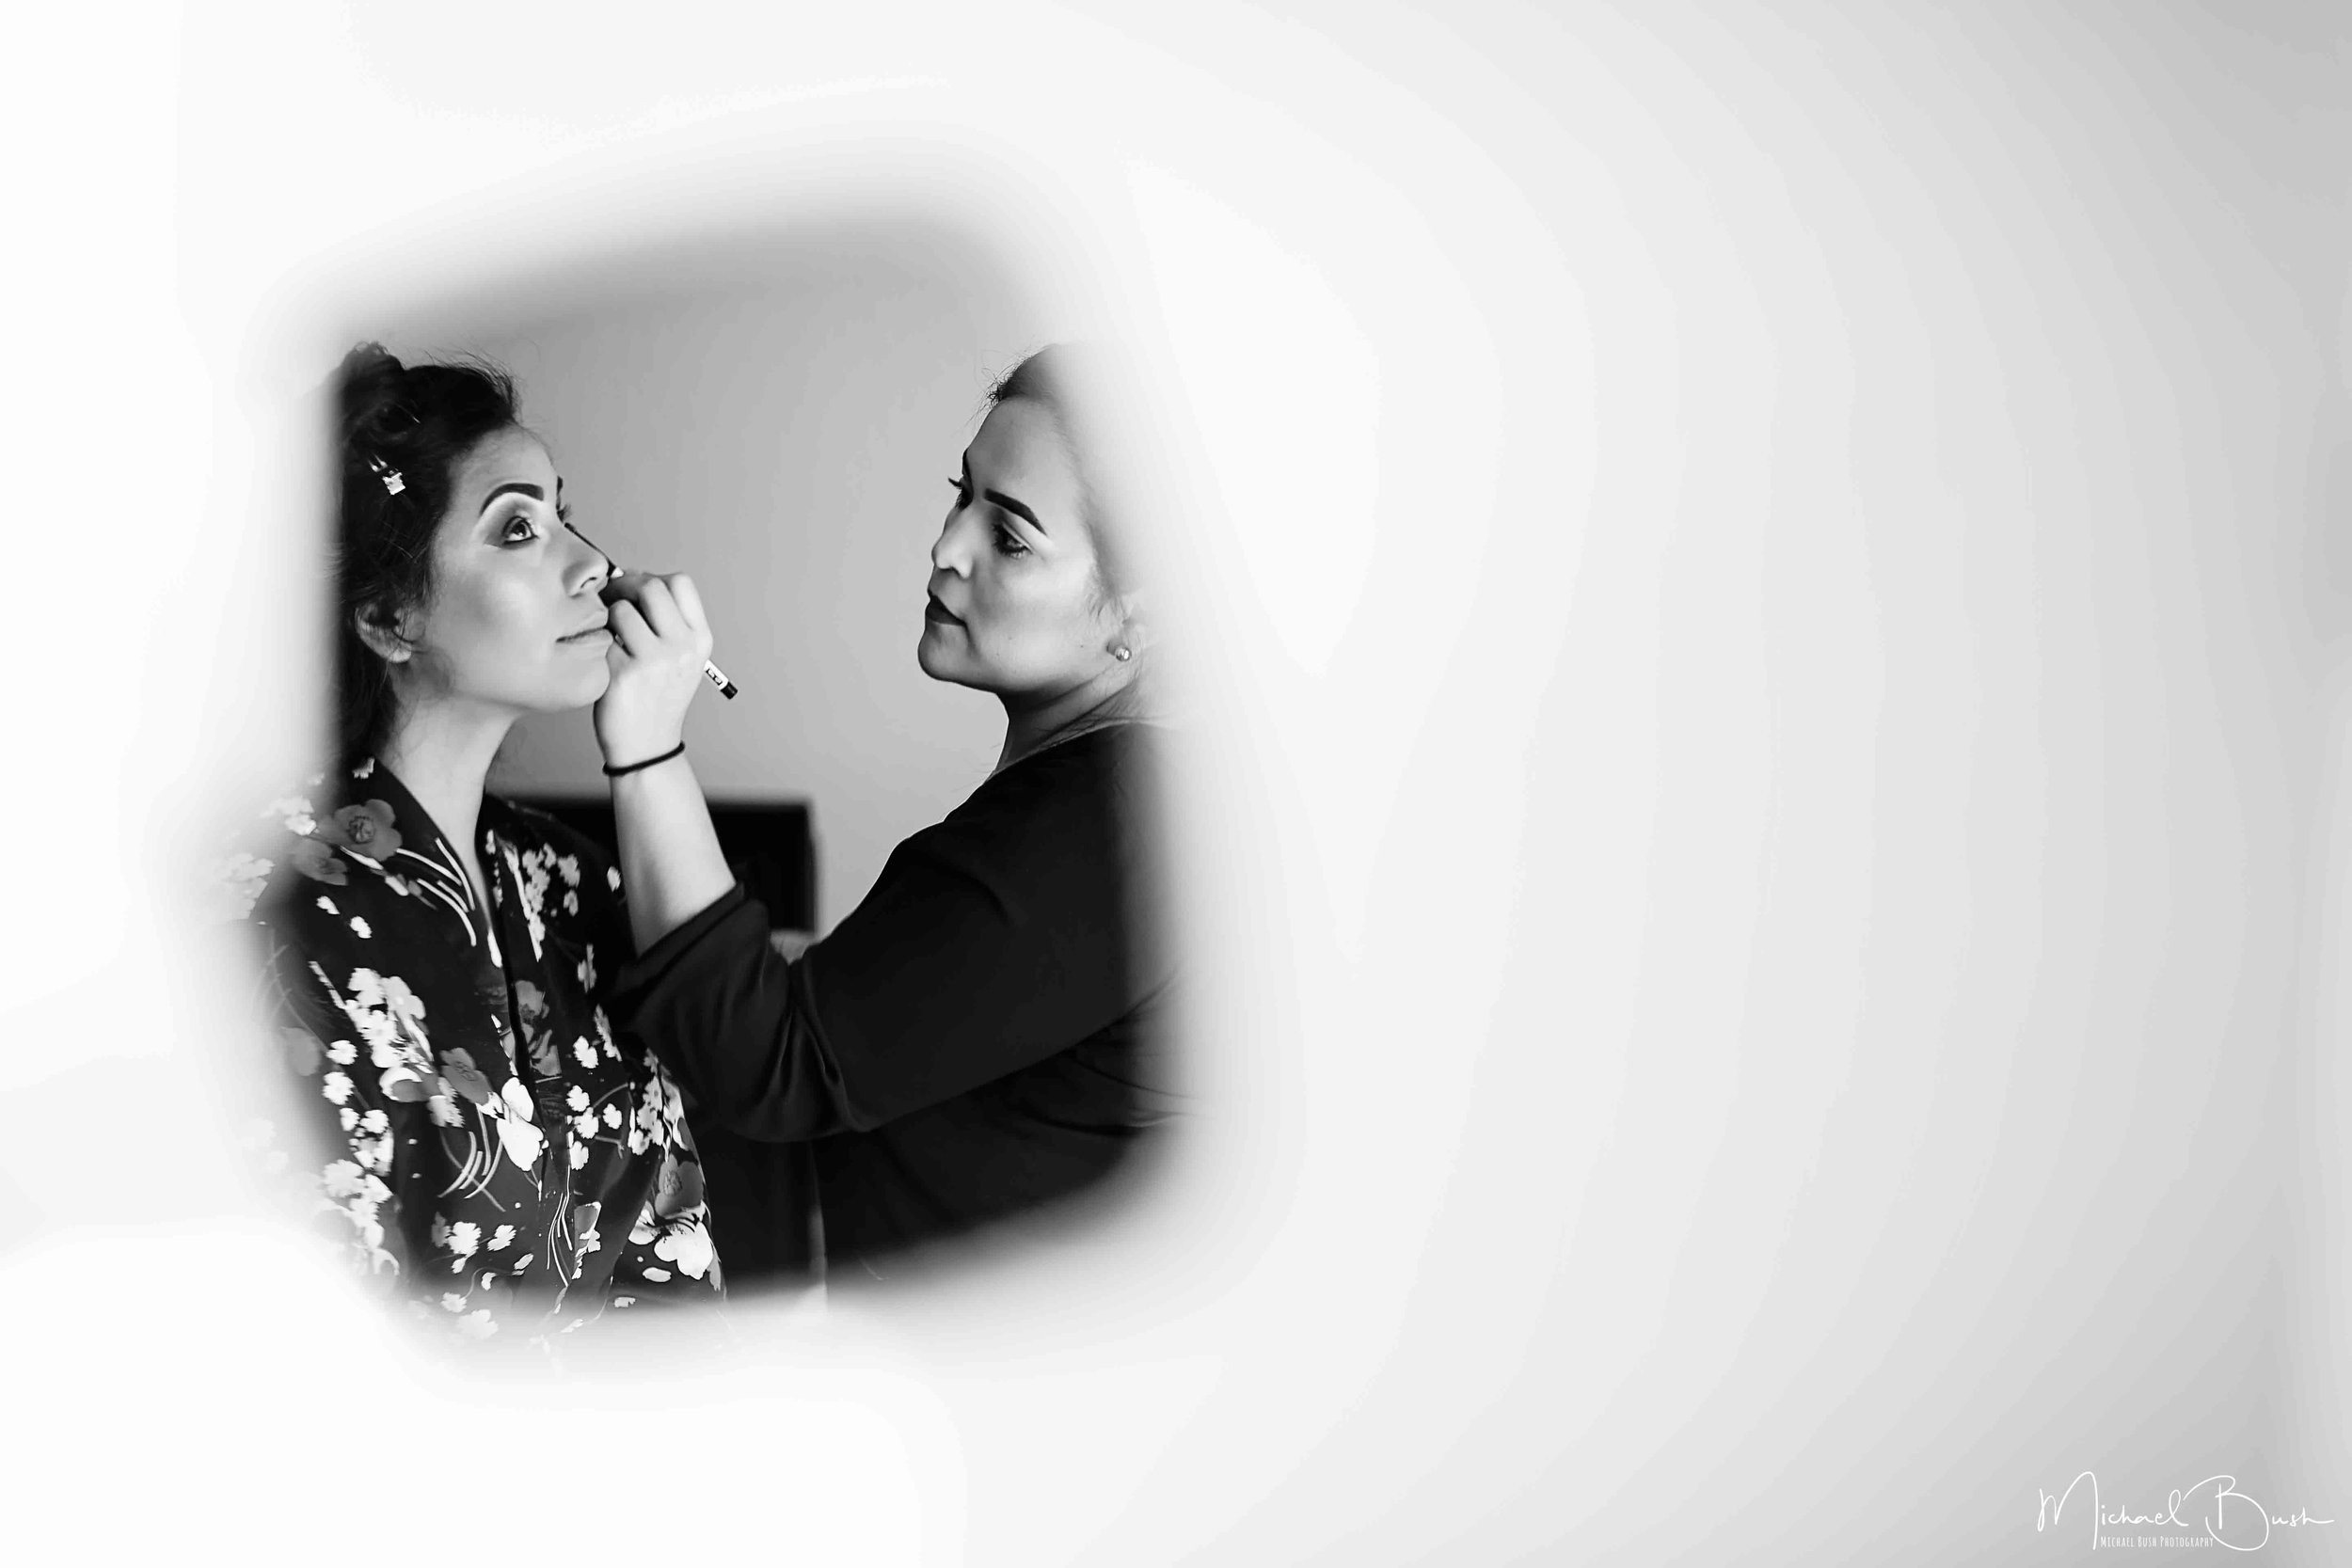 Wedding-Details-Bride-Fort Worth-colors-Getting Ready-MUA-brides-b&w,dramatic.jpg